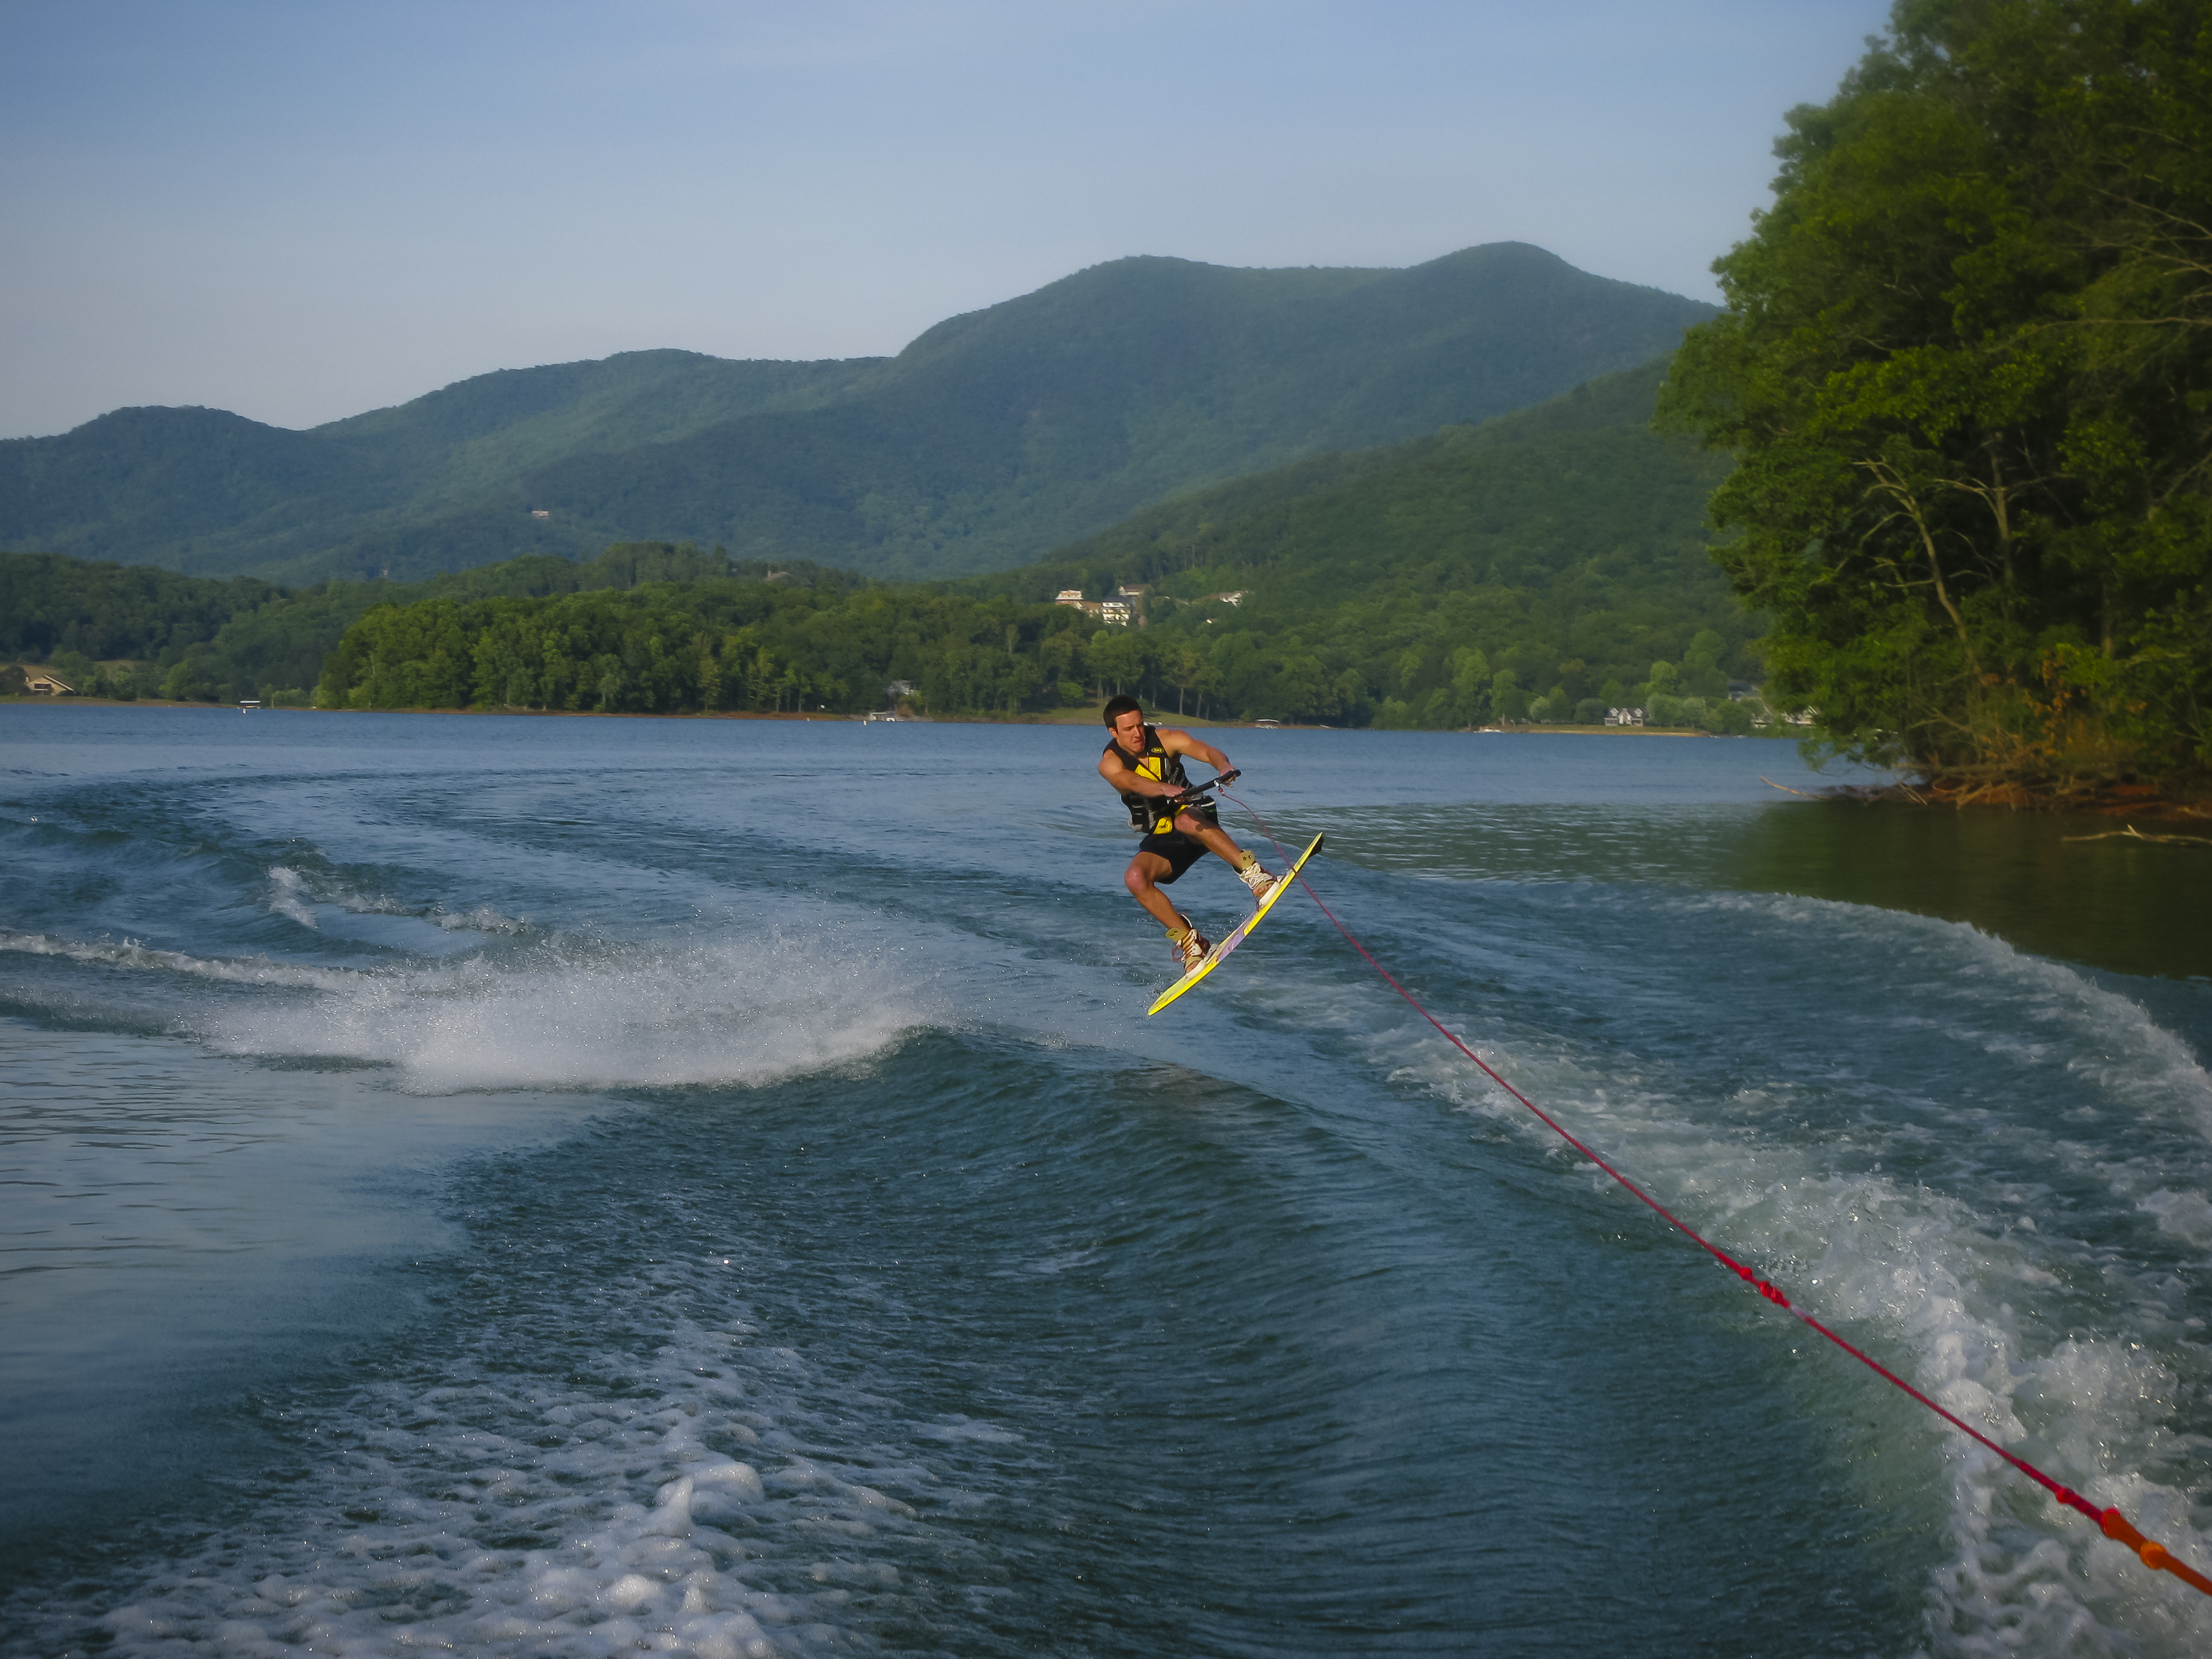 A water skier gets serious air.